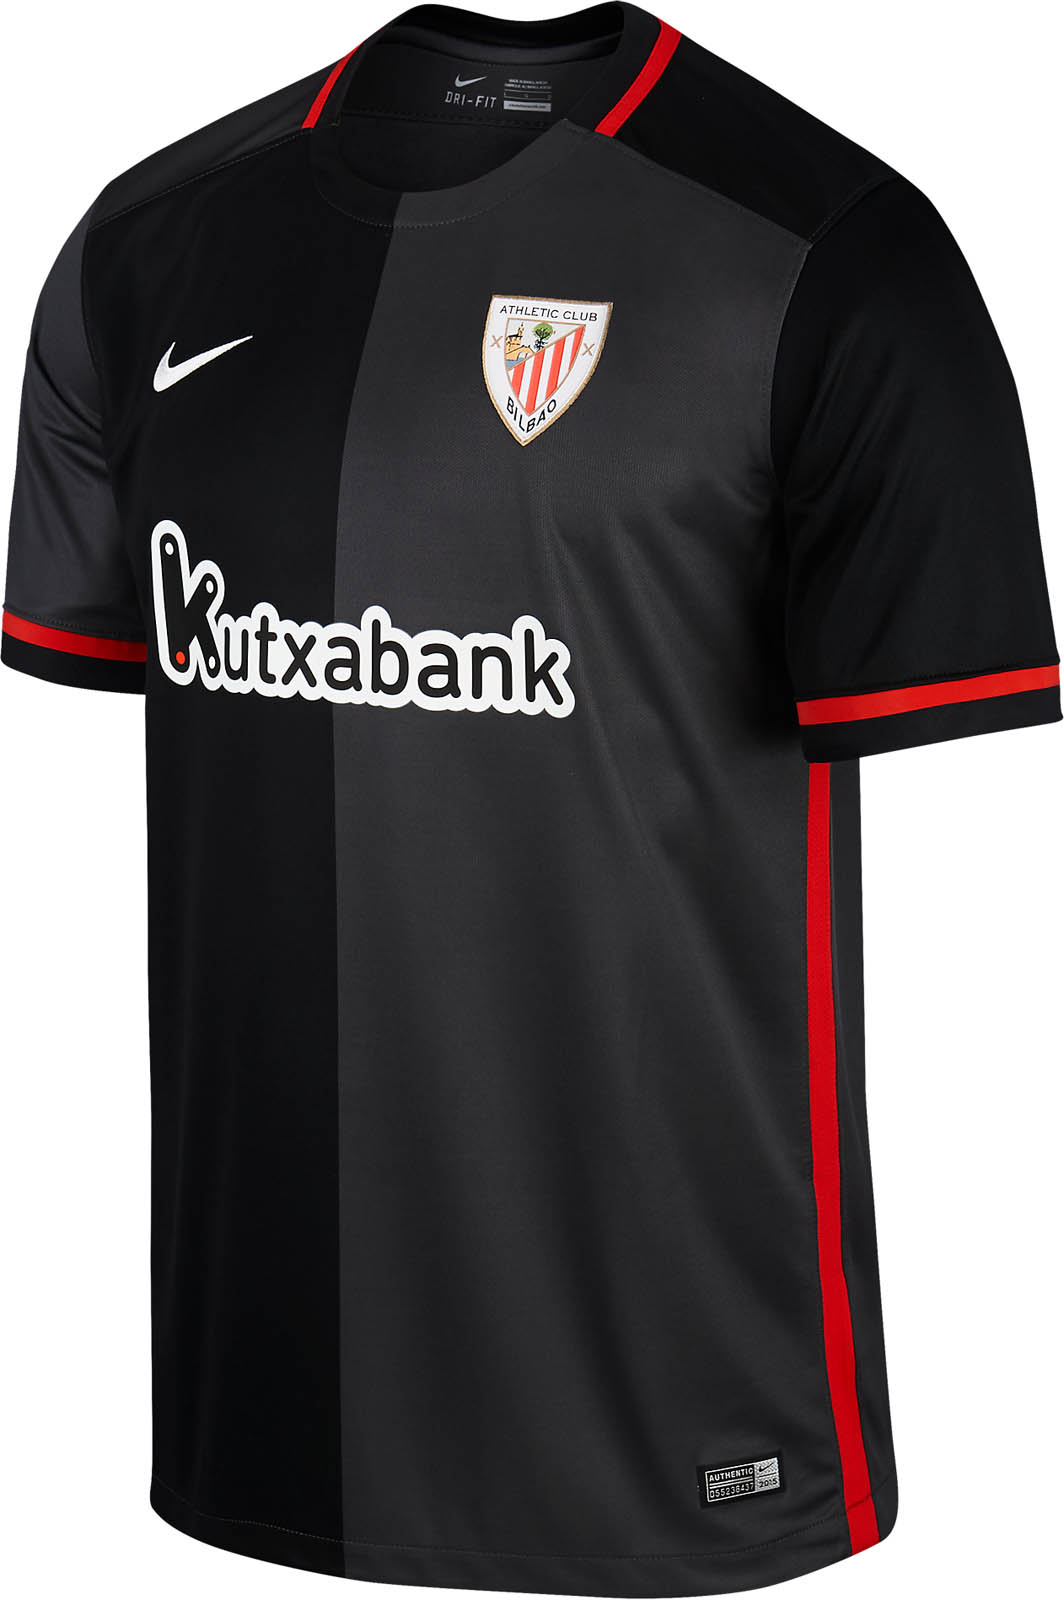 athletic-club-bilbao-15-16-away-kit%2B%25282%2529.jpg